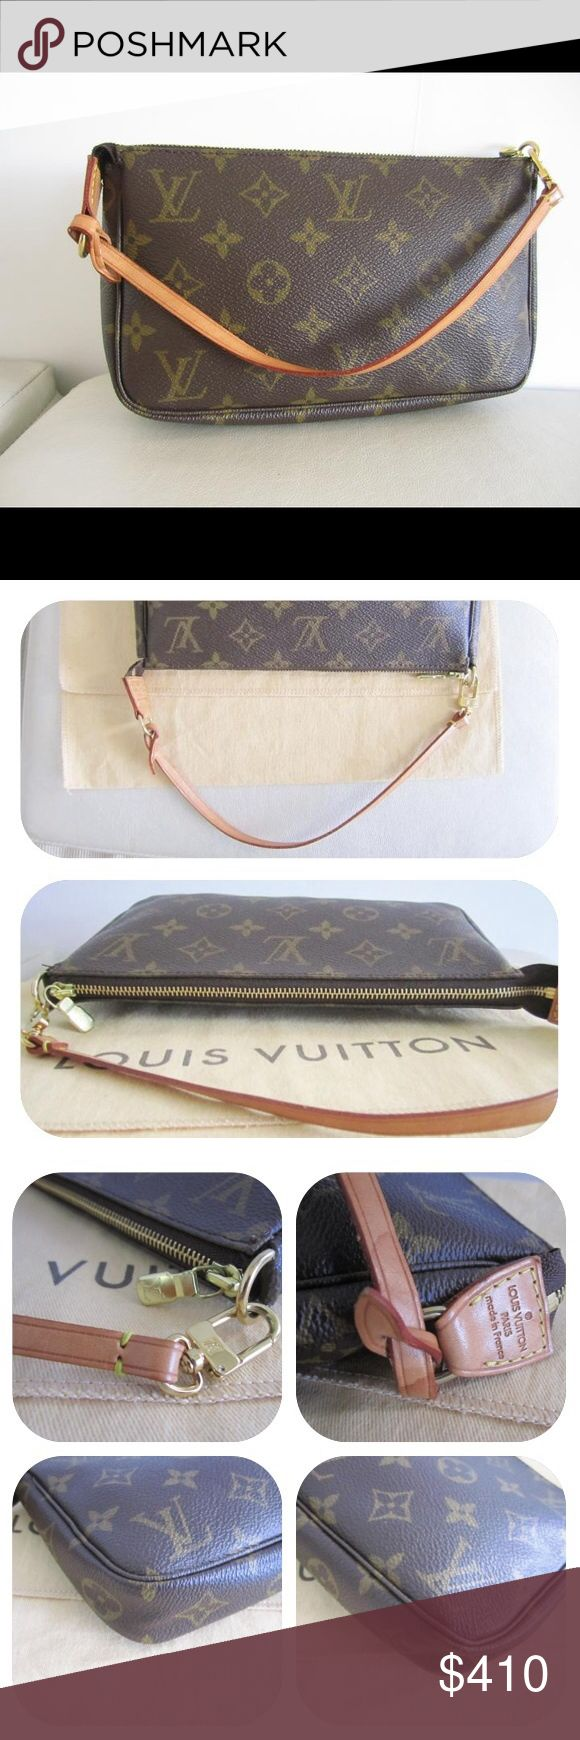 """Authentic Louis Vuitton Monogram Pochette Preowned. Please view all photos carefully, as they are an essential part of the description. Date code: VI1000. Dimensions: 9 """" length, 1"""" depth, 6"""" height. 5.5"""" strap drop. Zip closure. Can be carried as a clutch, wristlet, or pochette. Louis Vuitton dustbag is for display purposes only. Price is firm. No trades or PayPal. Louis Vuitton Bags Shoulder Bags"""